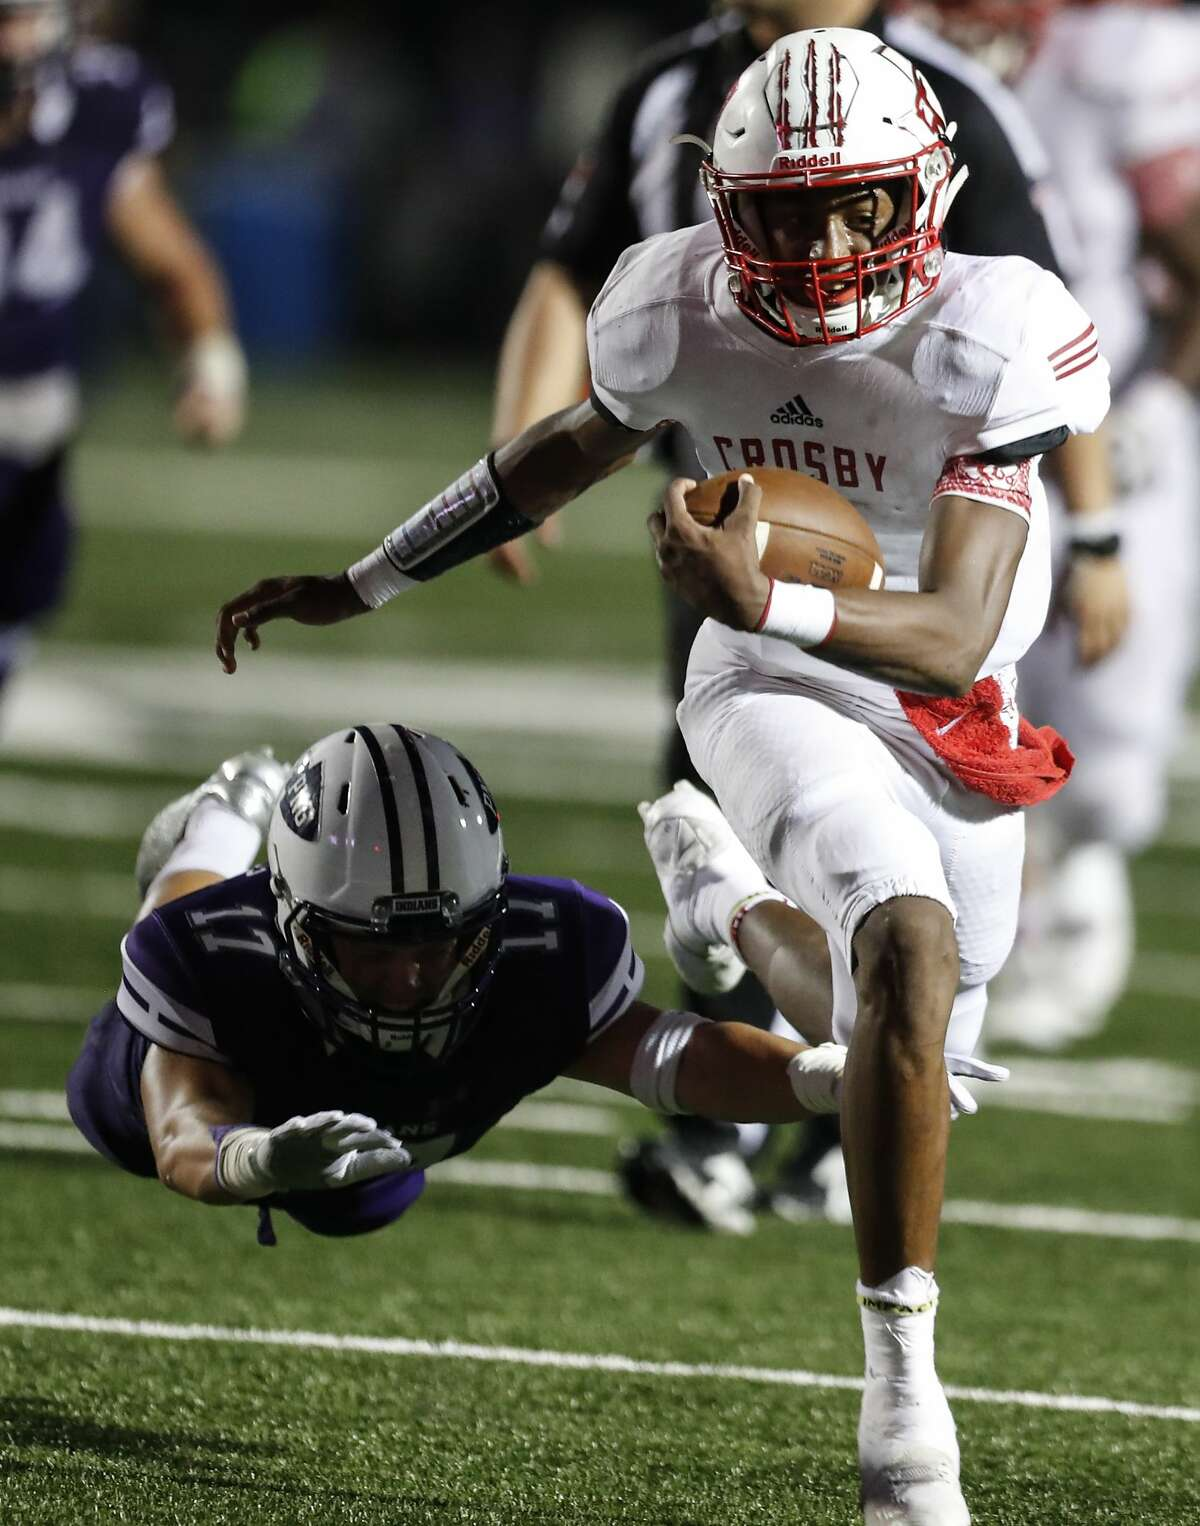 Crosby quarterback Jaiden Howard (7) runs past Port Neches-Groves defensive back Zane Hernandez (17) during the fourth quarter of a Class 5A bi-district playoff football game at Stallworth Stadium on Friday, Nov. 17, 2017, in Baytown. Port Neches-Groves advanced in the playoffs with a 72-69 win. ( Brett Coomer / Houston Chronicle )